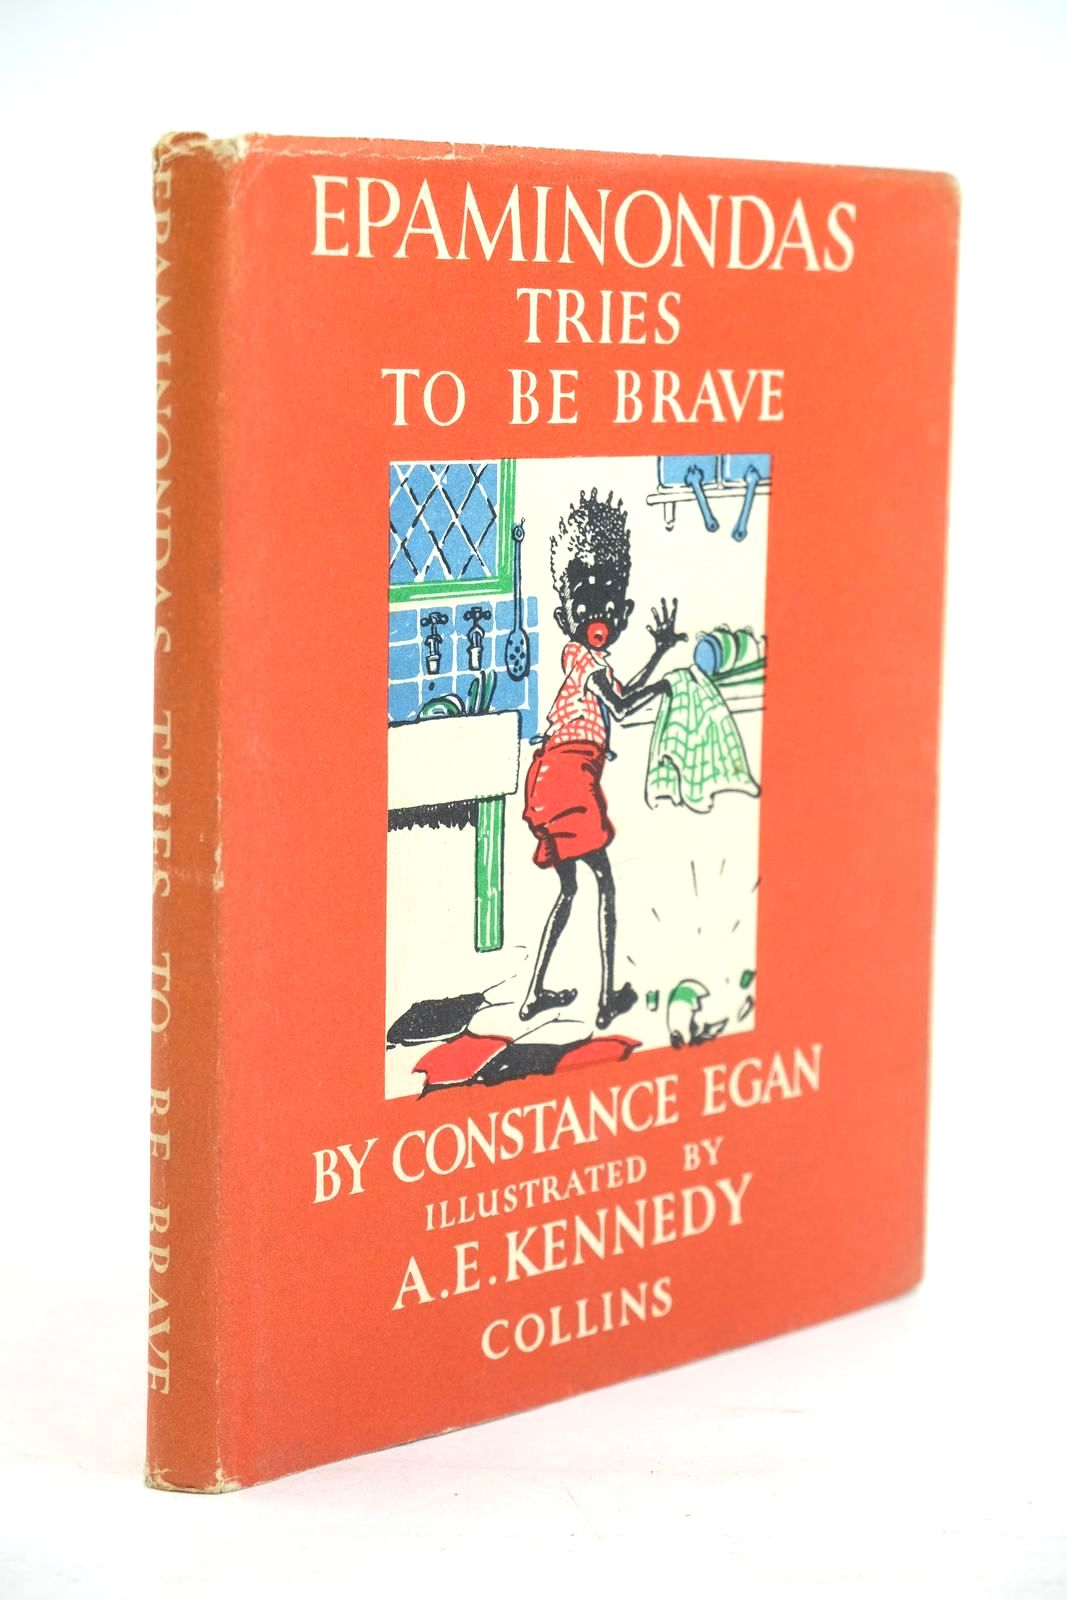 Photo of EPAMINONDAS TRIES TO BE BRAVE written by Egan, Constance illustrated by Kennedy, A.E. published by Collins (STOCK CODE: 1320099)  for sale by Stella & Rose's Books